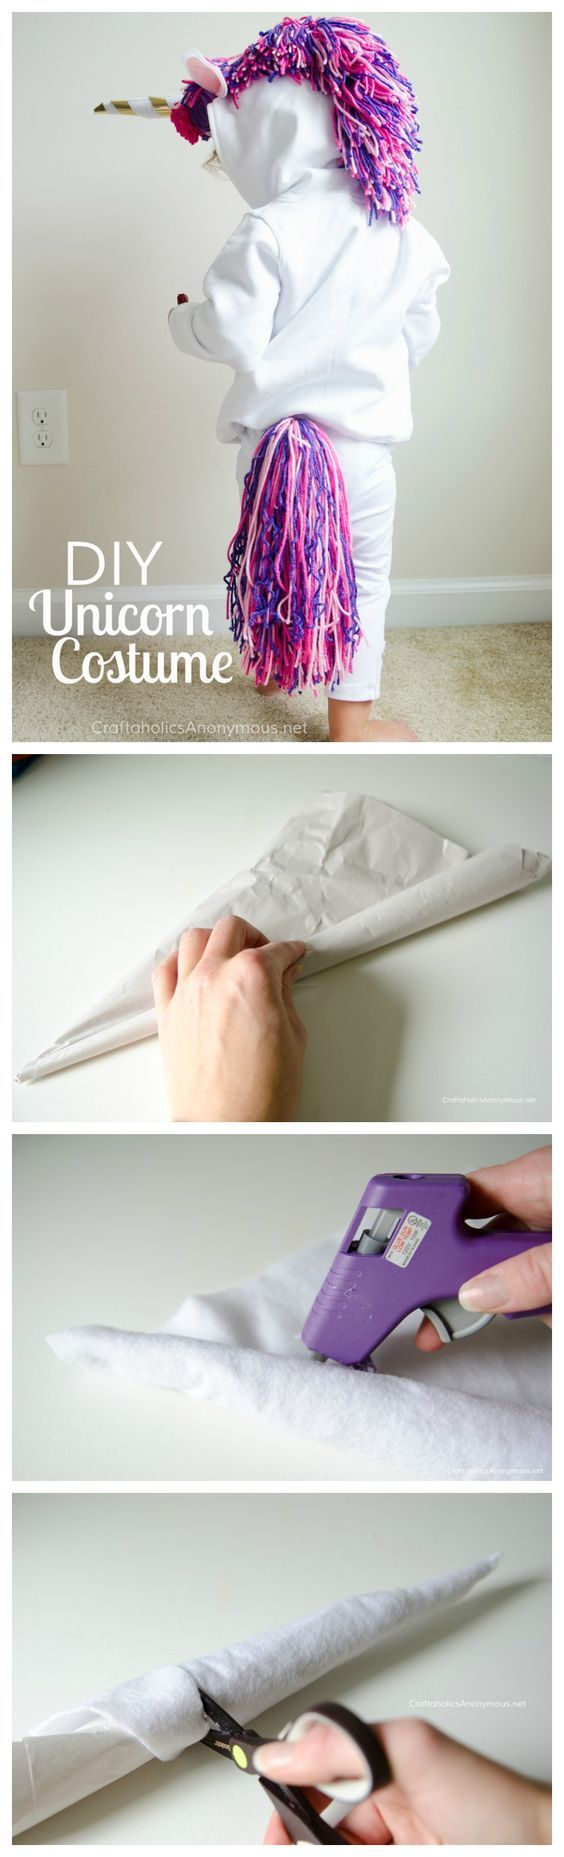 Halloween costumes have gone unicorn! This costume pattern is a simple idea, and we love the hair